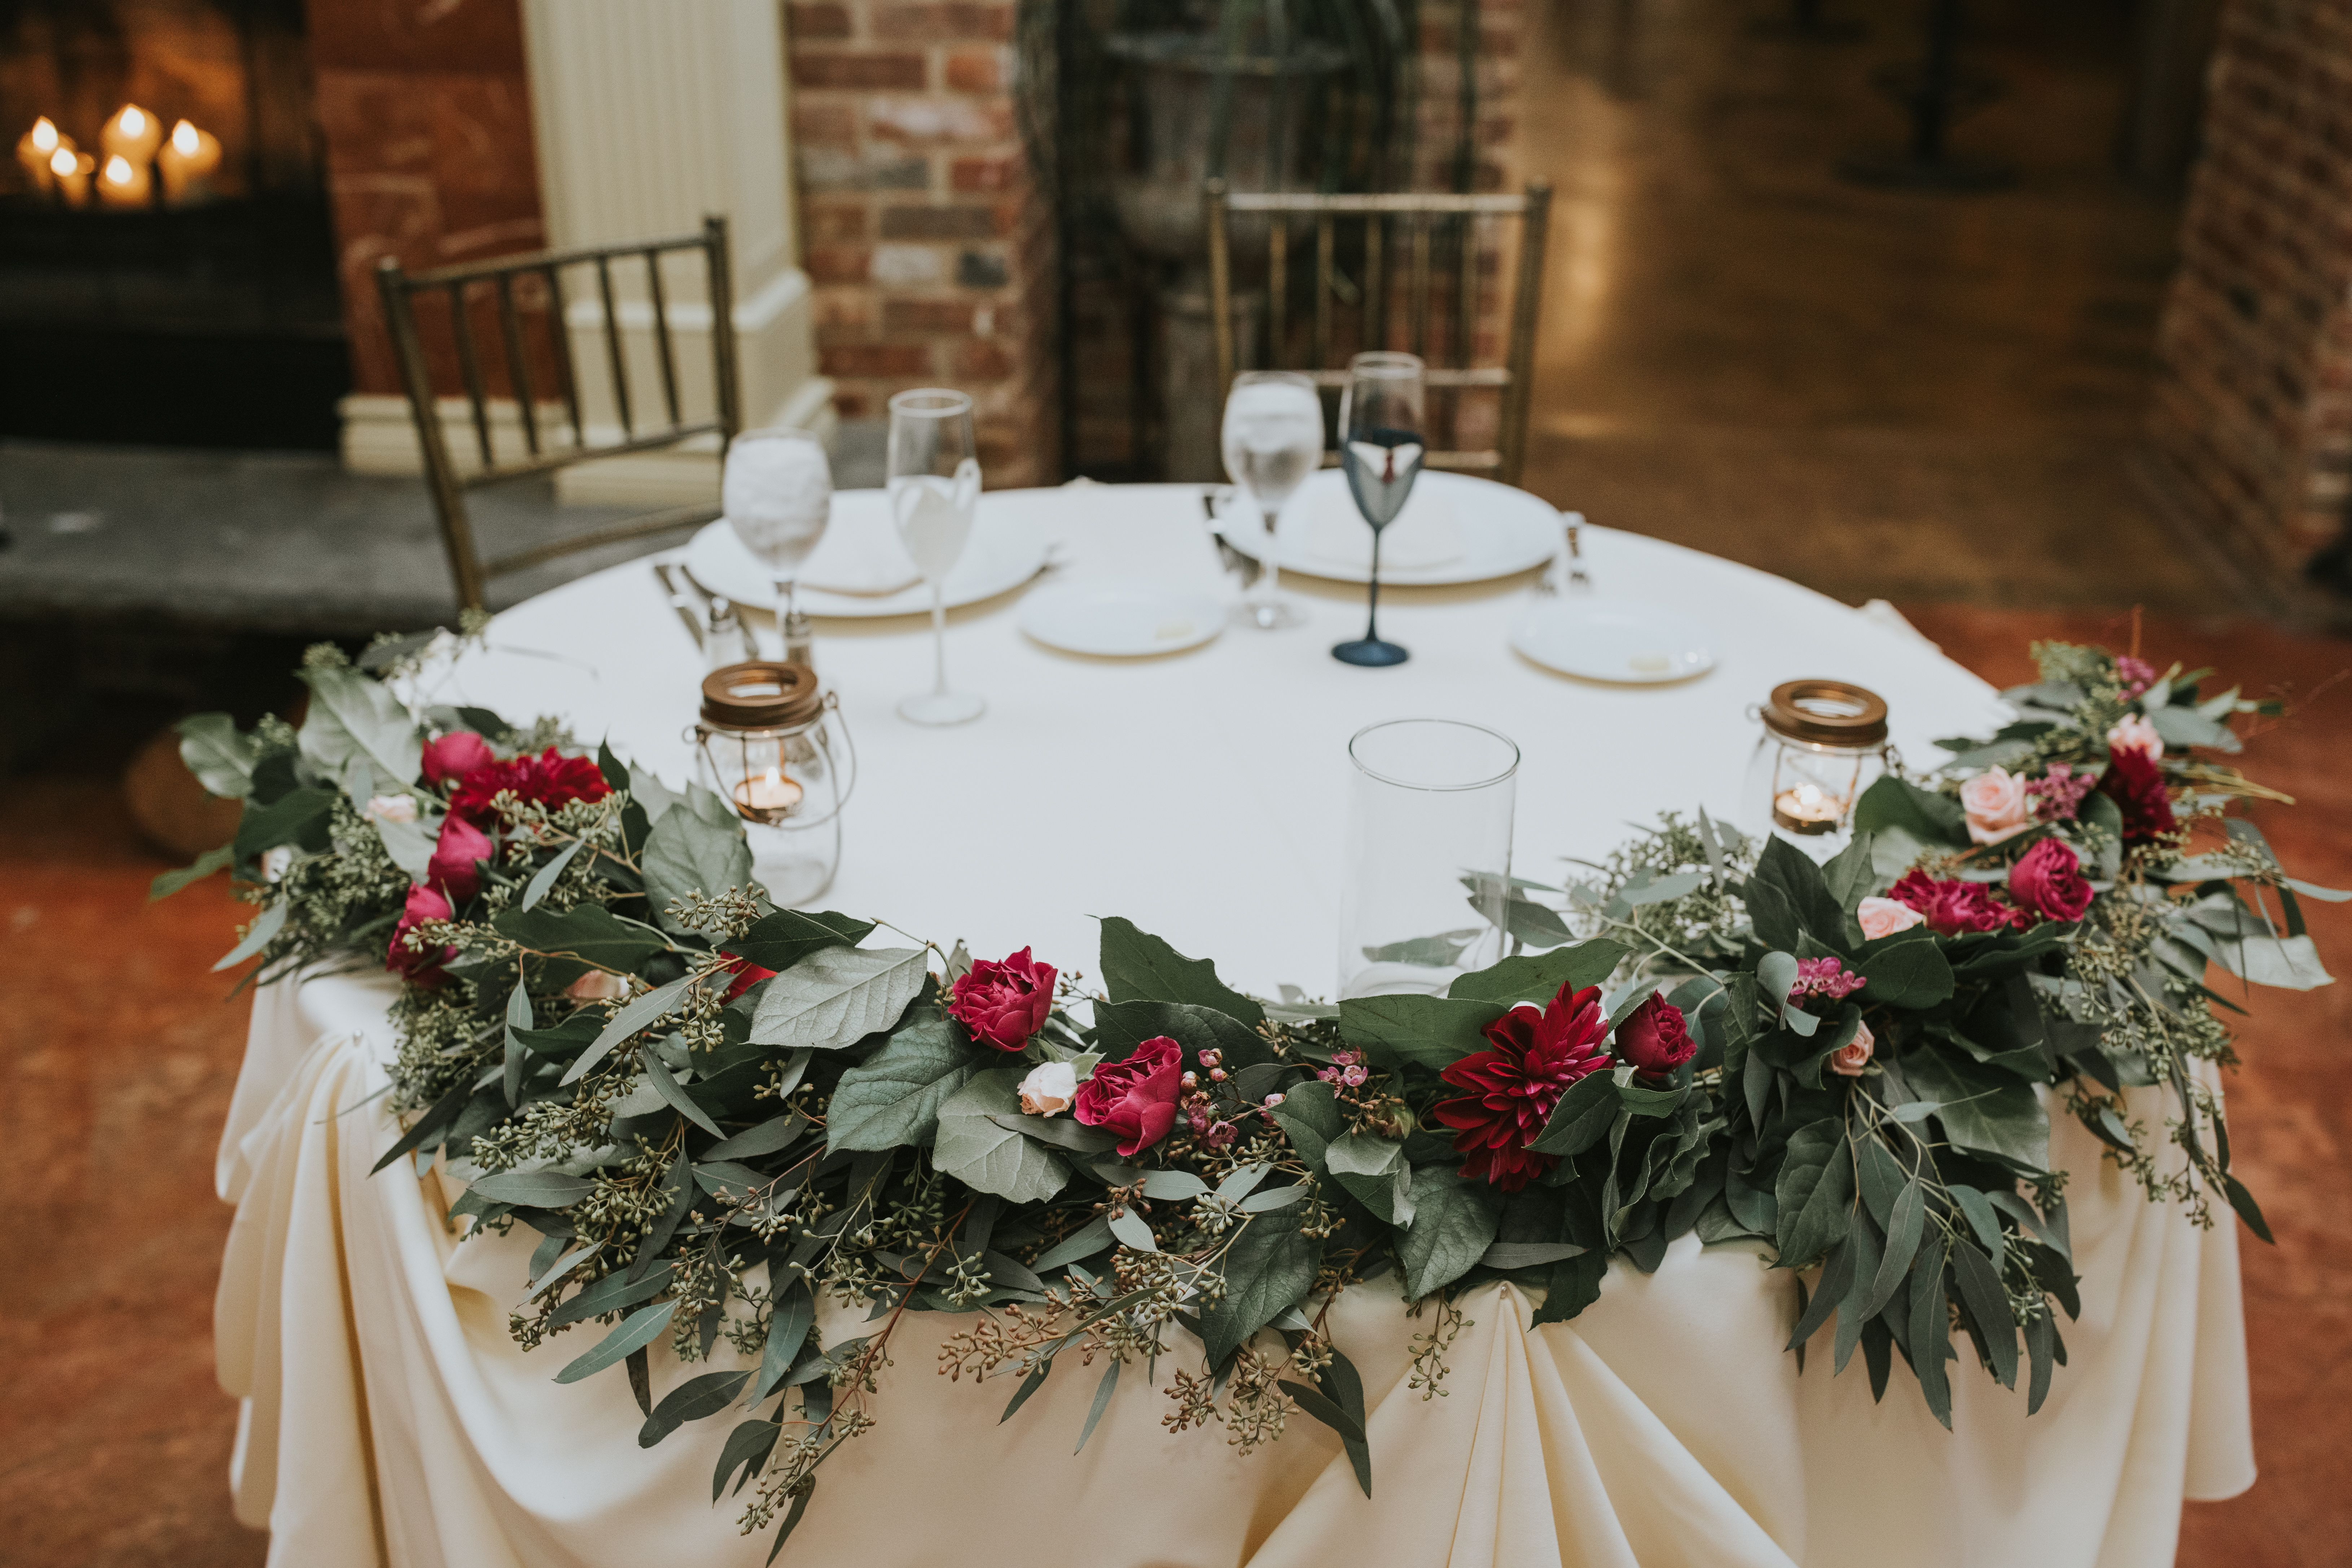 Down The Aisle Head Table Or Sweetheart Table: Head Table, Sweetheart Table Decor, Wedding Ideas, Wedding